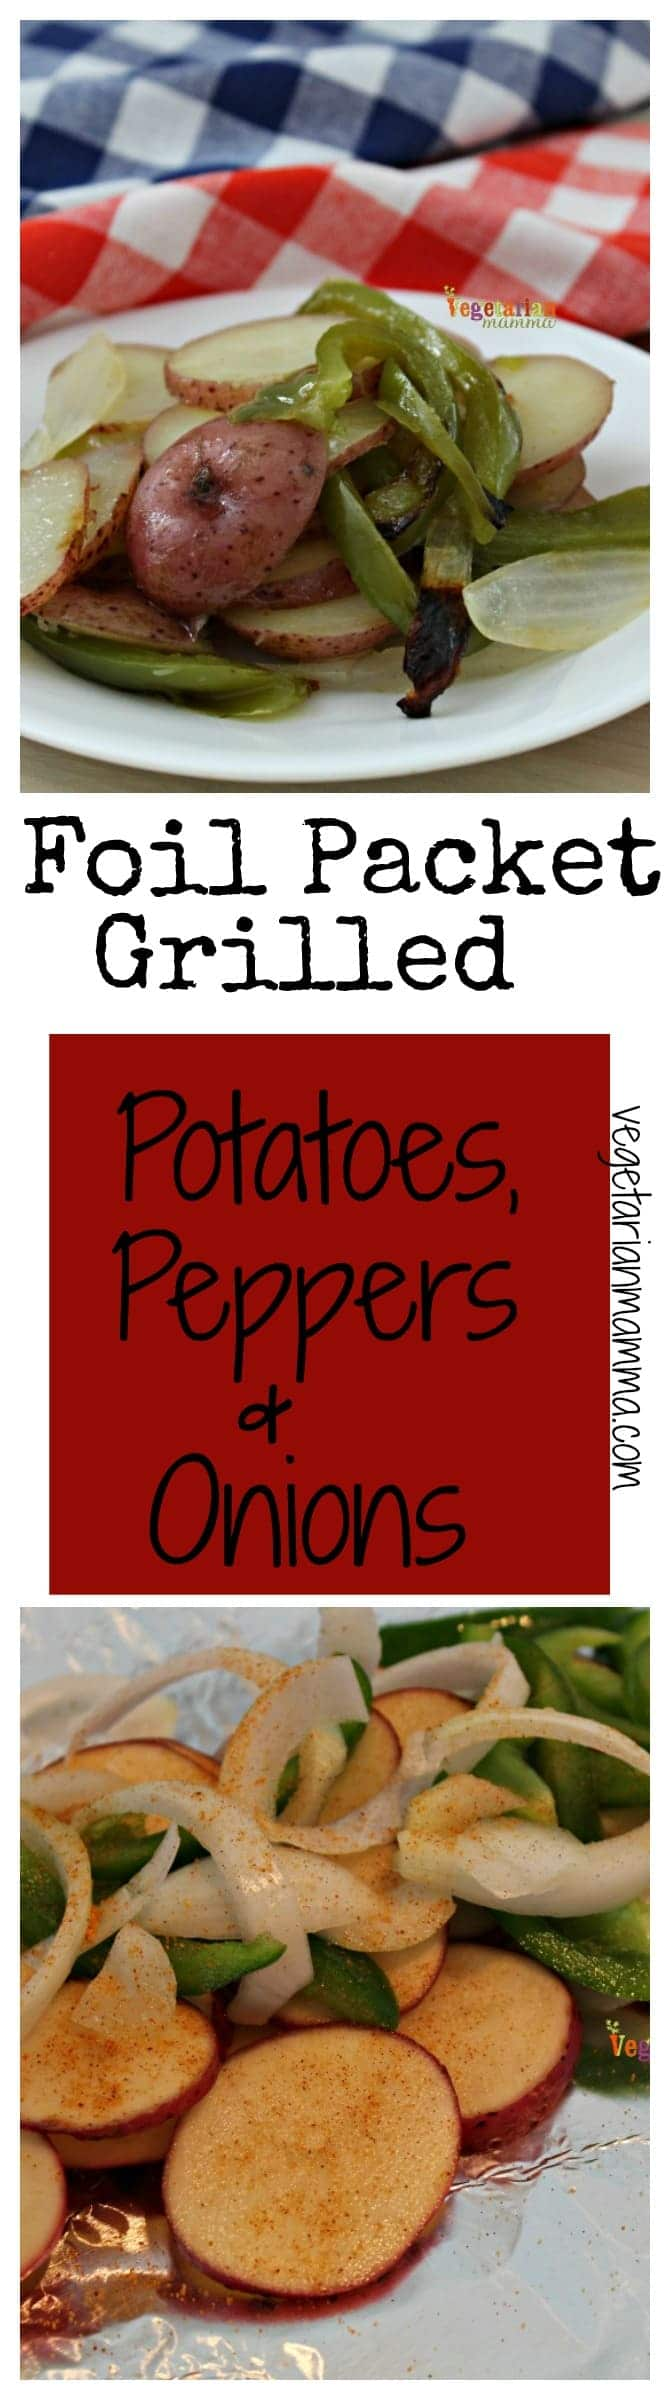 Foil Packet Cooking - Grilled Potatoes, Onions, Peppers